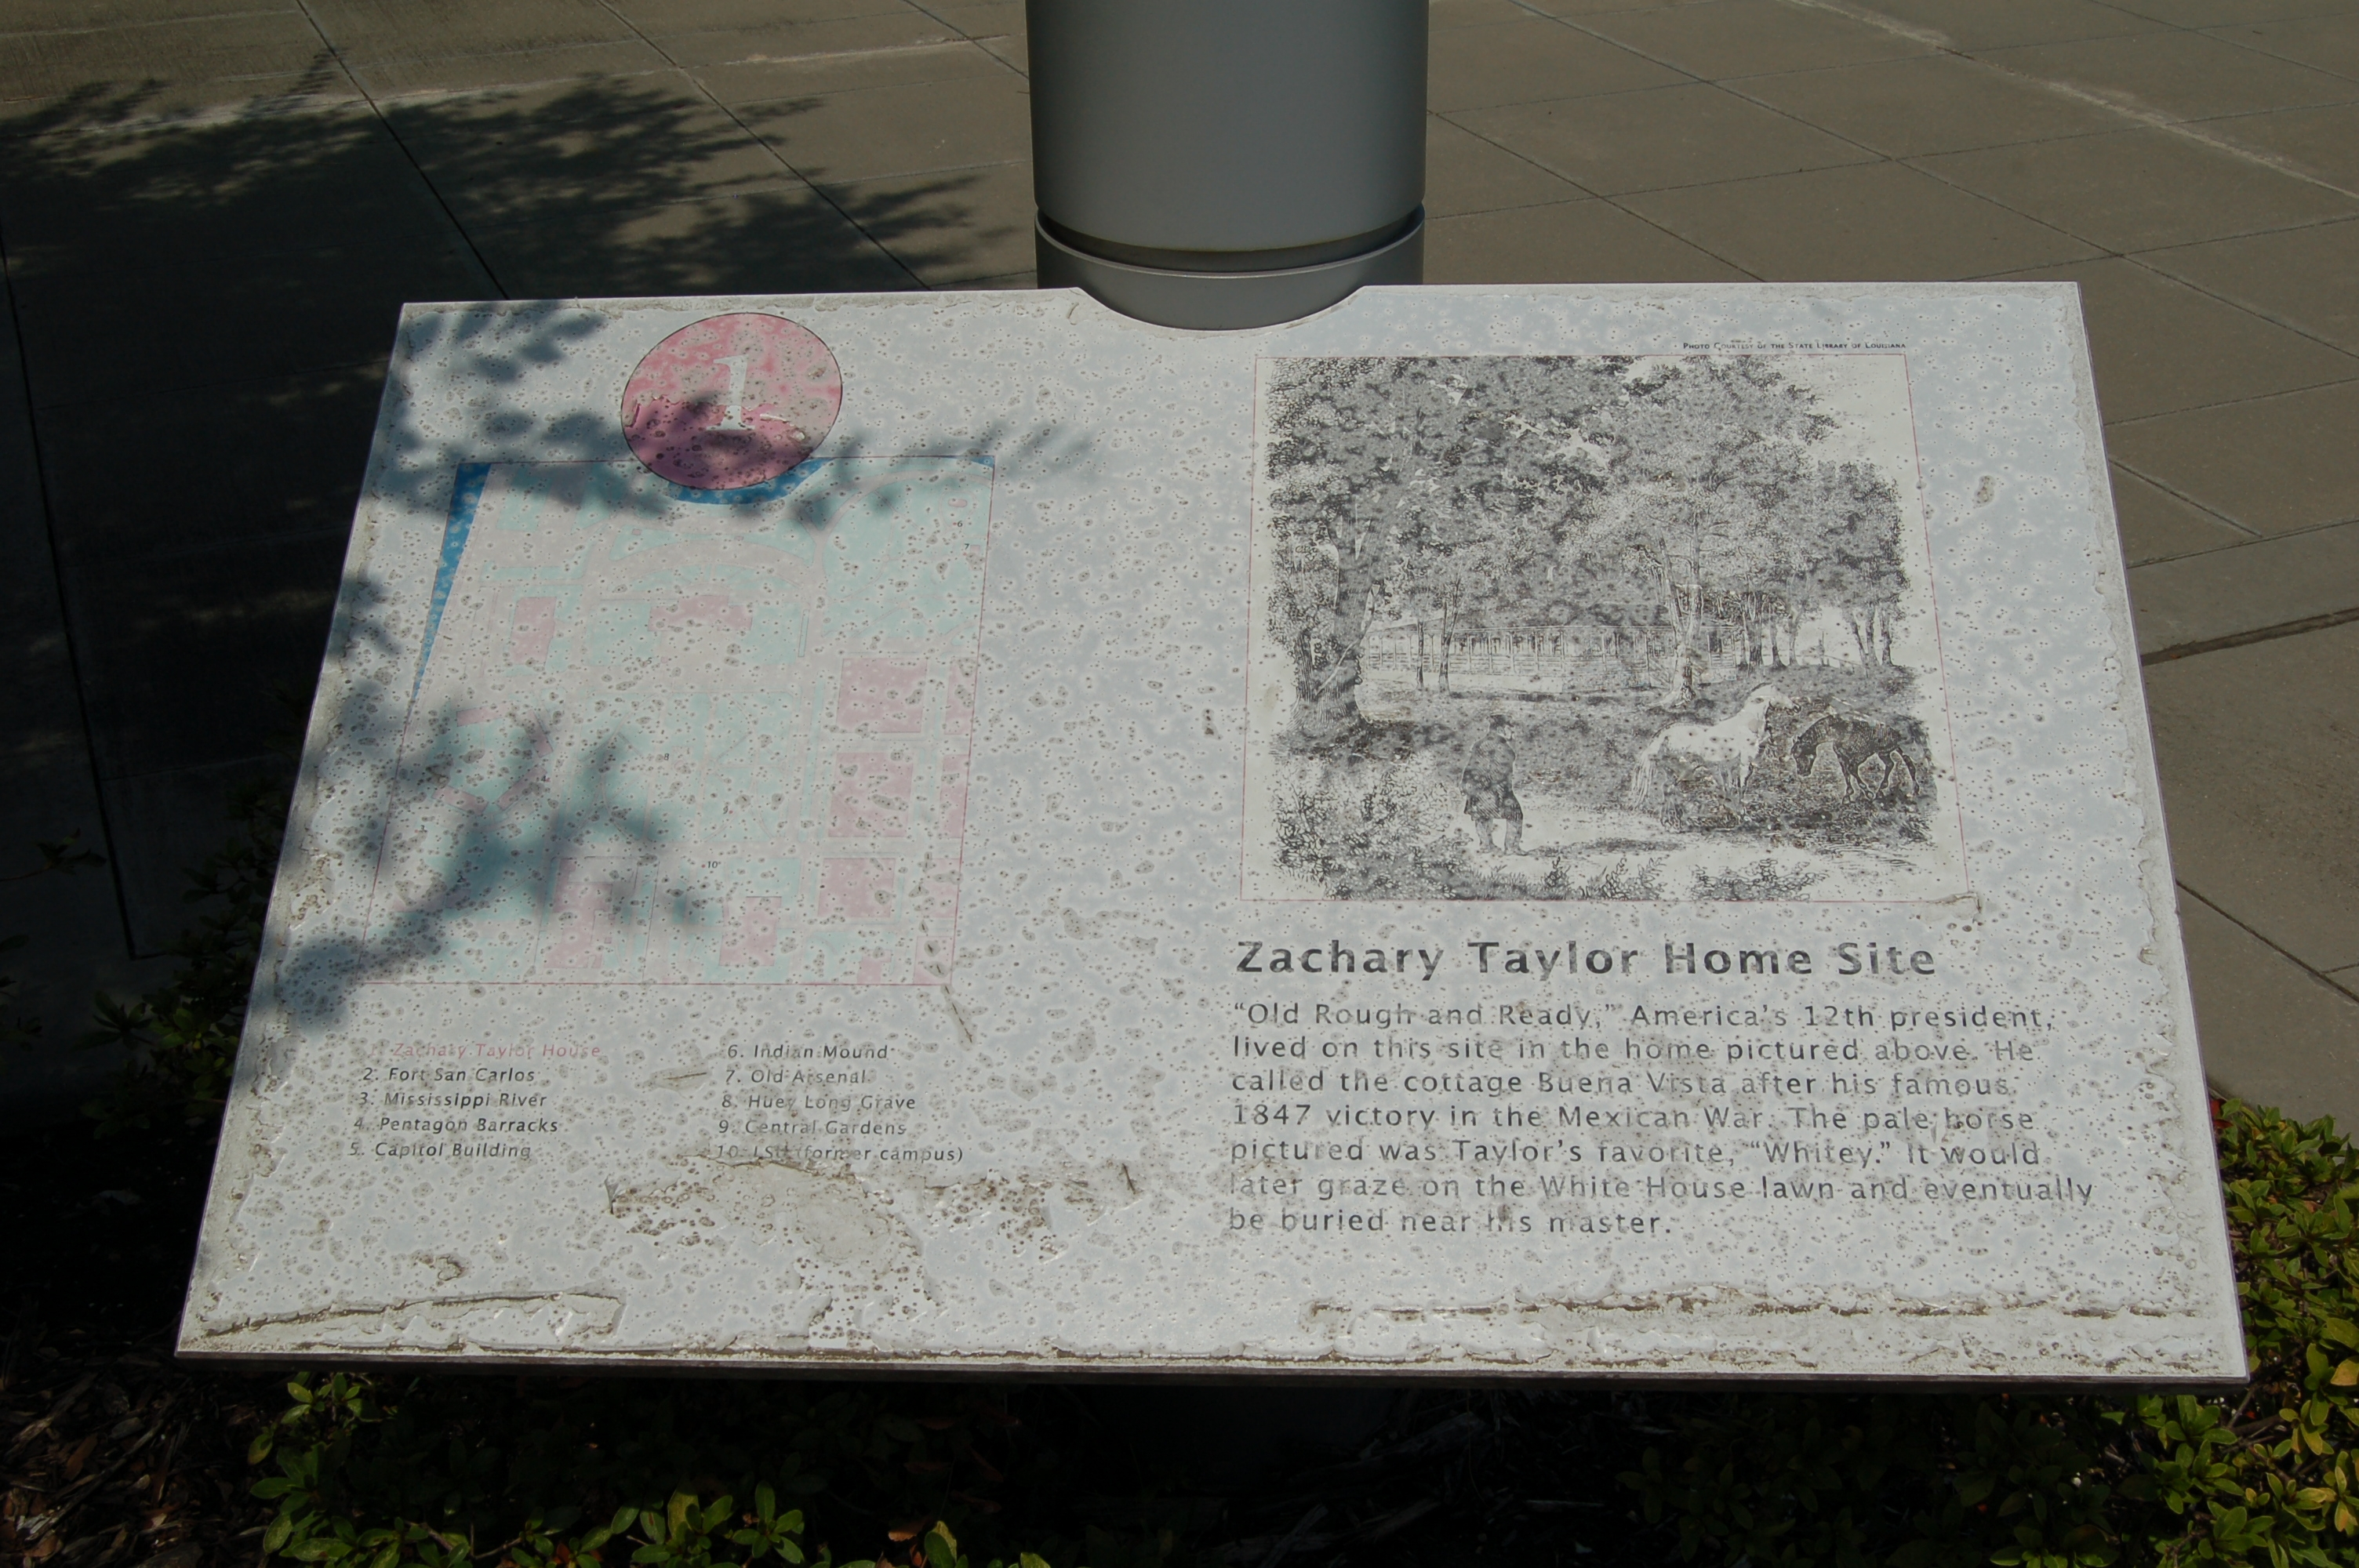 Zachary Taylor Home Site Marker